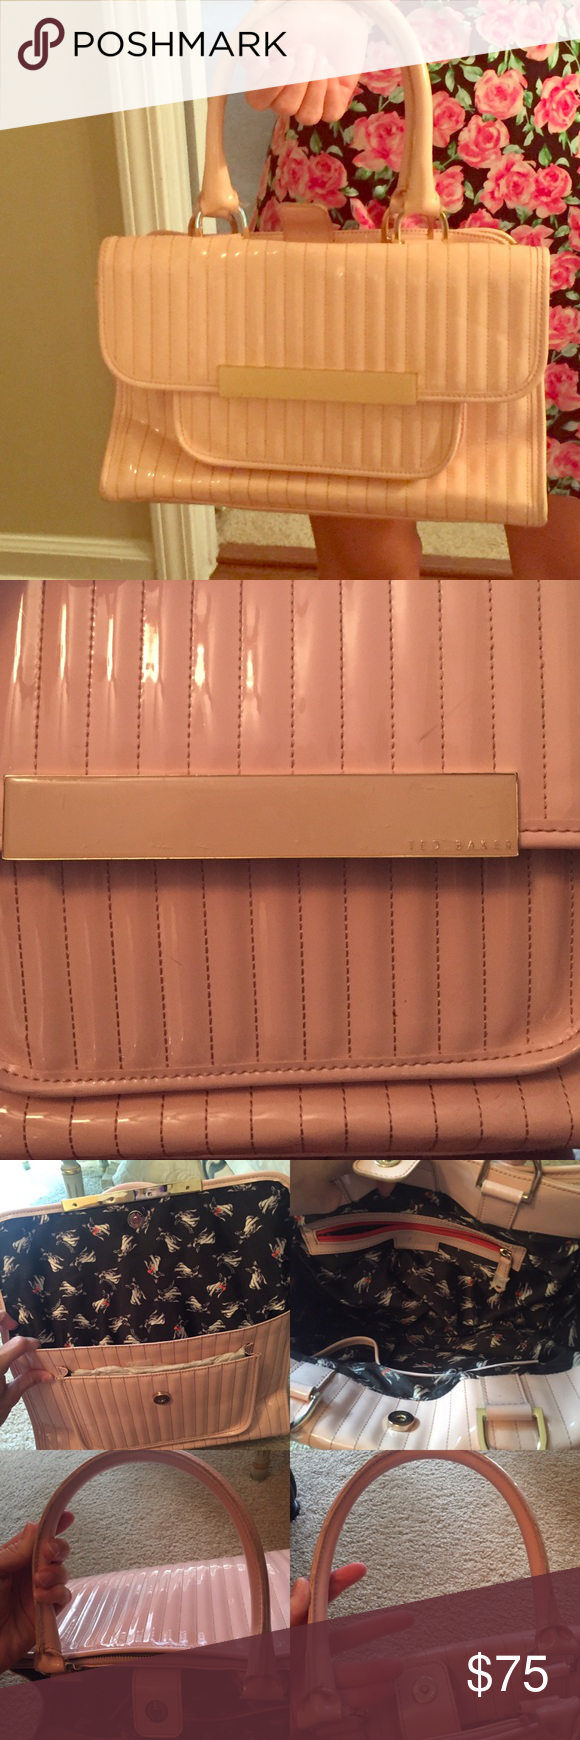 Ted Baker Purse Used Nude pinkish Ted Baker Purse inside the  handles has few Marks and where says Ted baker has scratches not noticeable inside looks like new has 3 pockets the big one a smaller & little one the first pocket never been used still has the paper inside.        Accept reasonable offers:) Ted Baker Bags Shoulder Bags